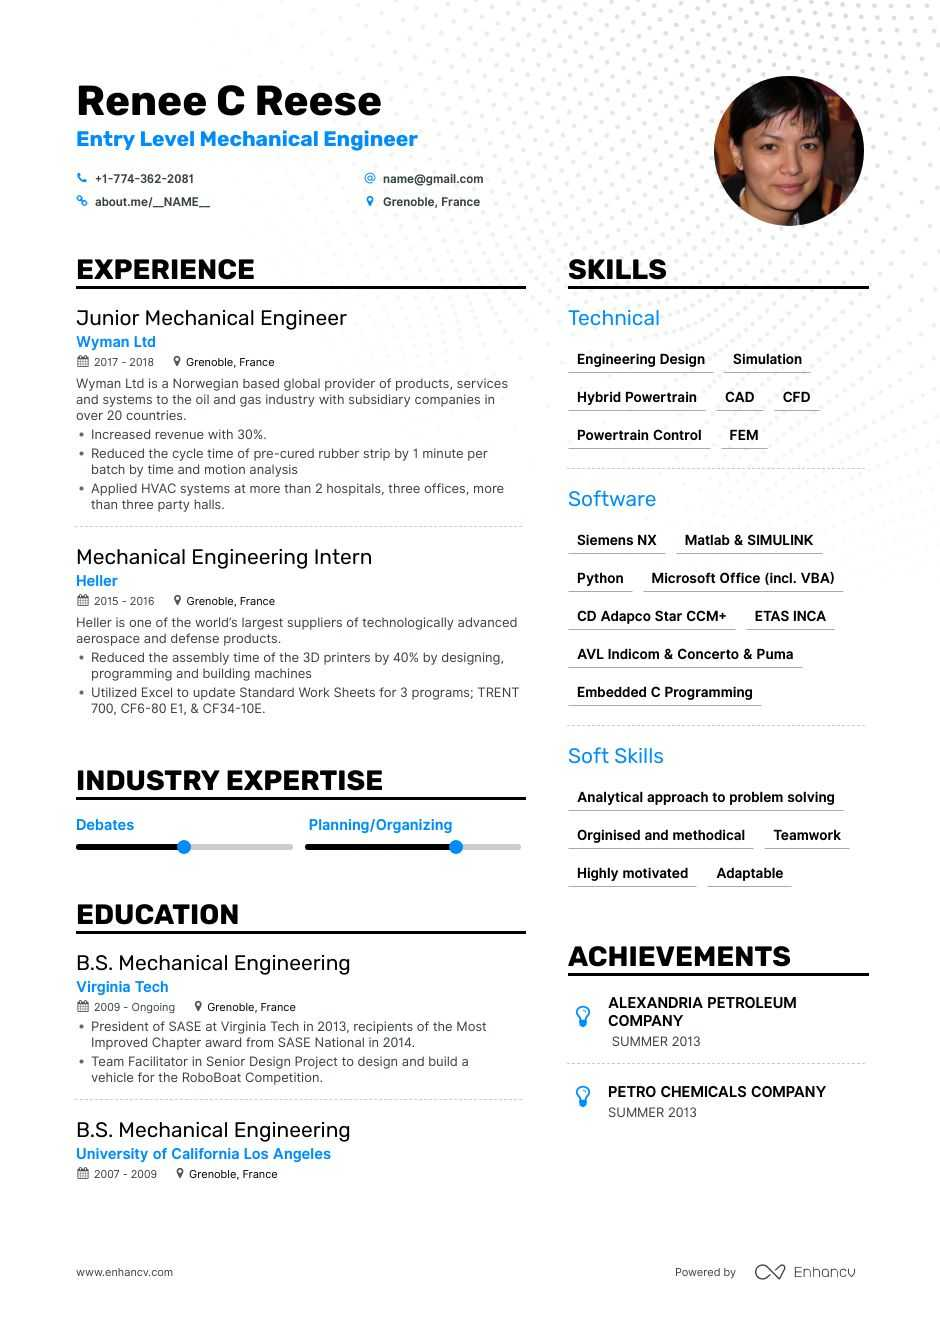 Top Entry Level Mechanical Engineer Resume Examples Expert Tips Enhancv Com